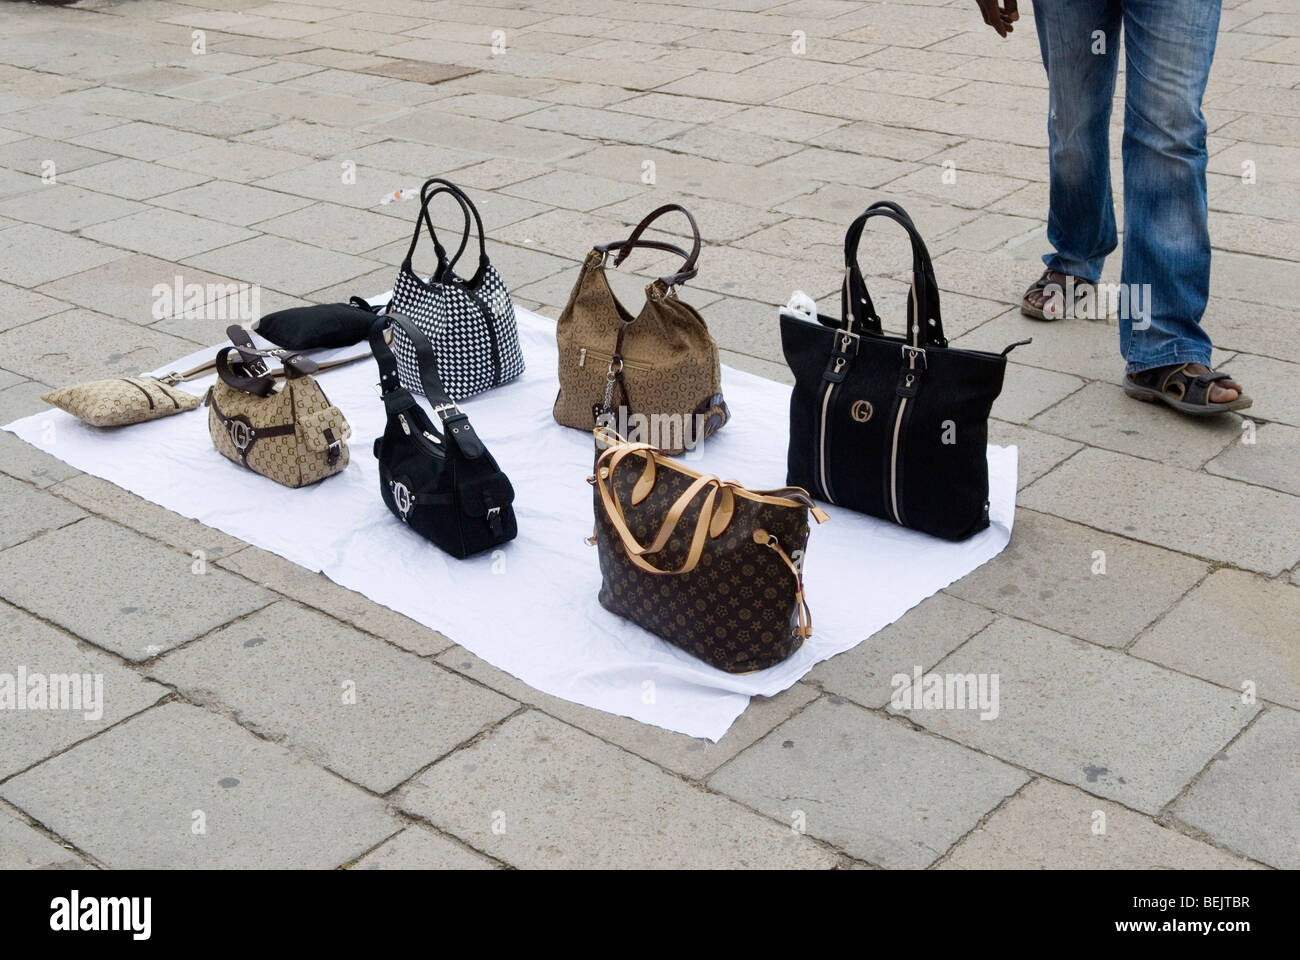 c88d9de6d56a Fake designer handbags for sale. Venice Italy HOMER SYKES - Stock Image